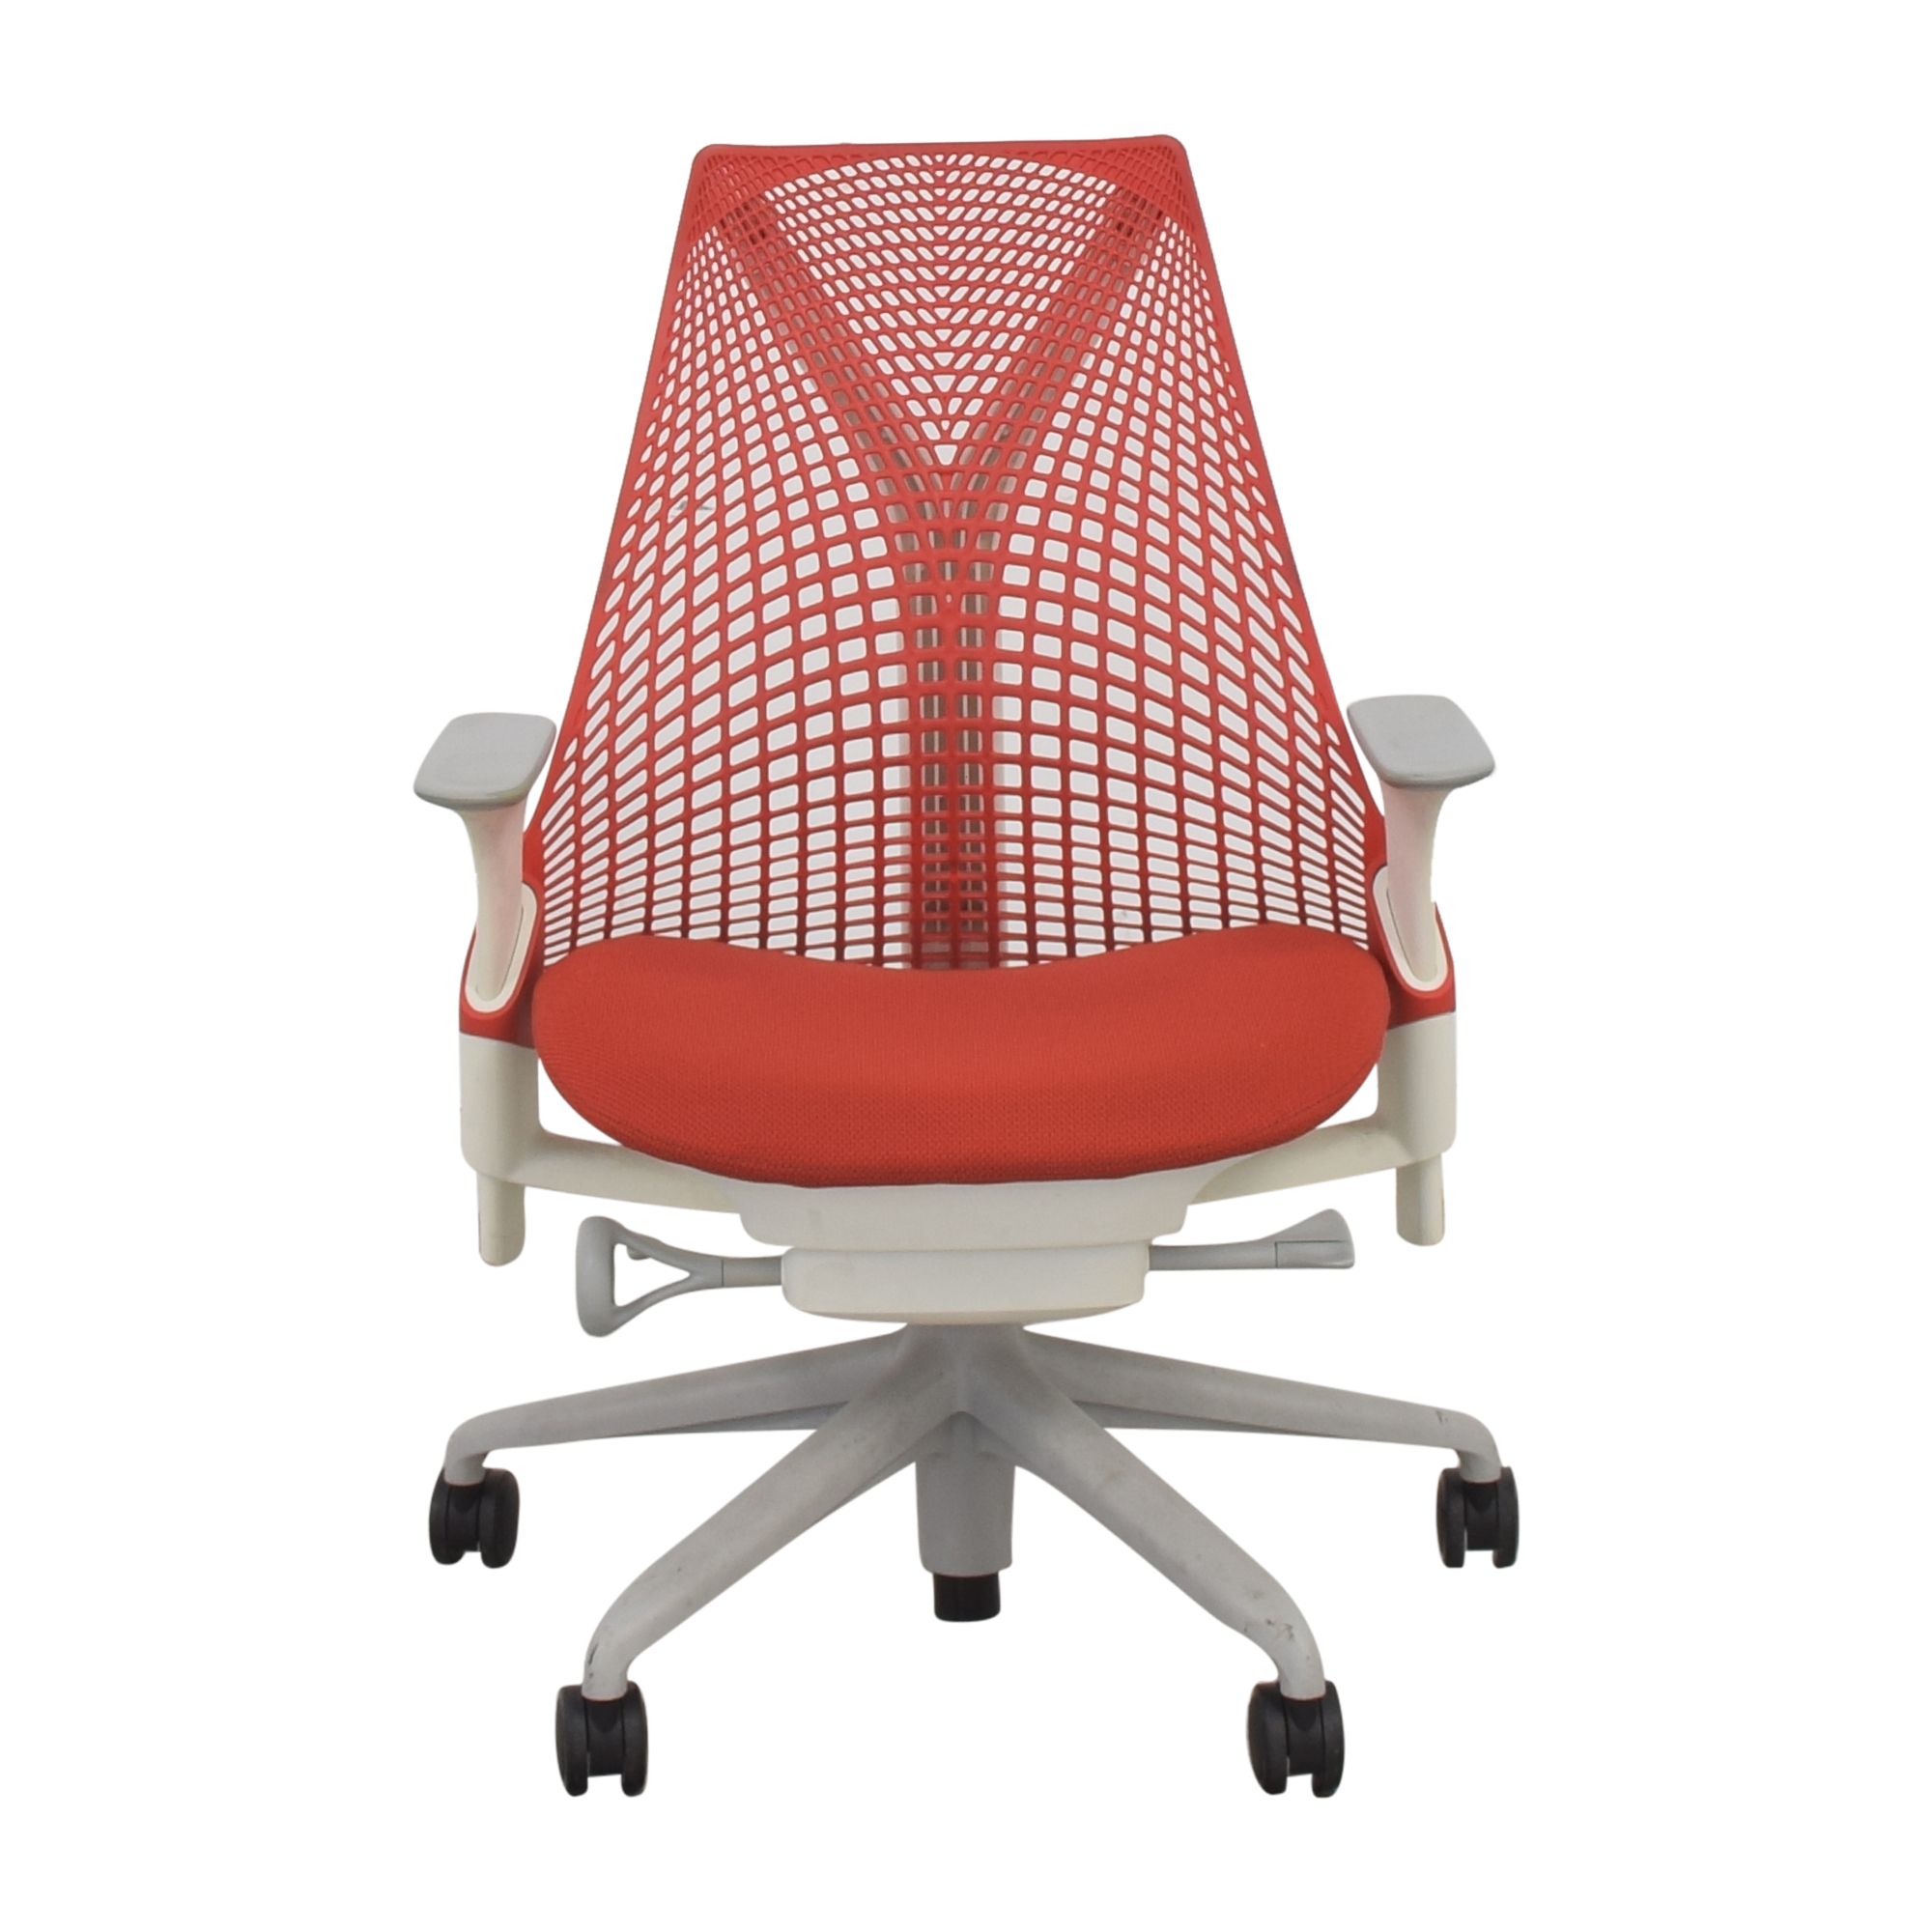 Herman Miller Herman Miller Sayl Chair coupon